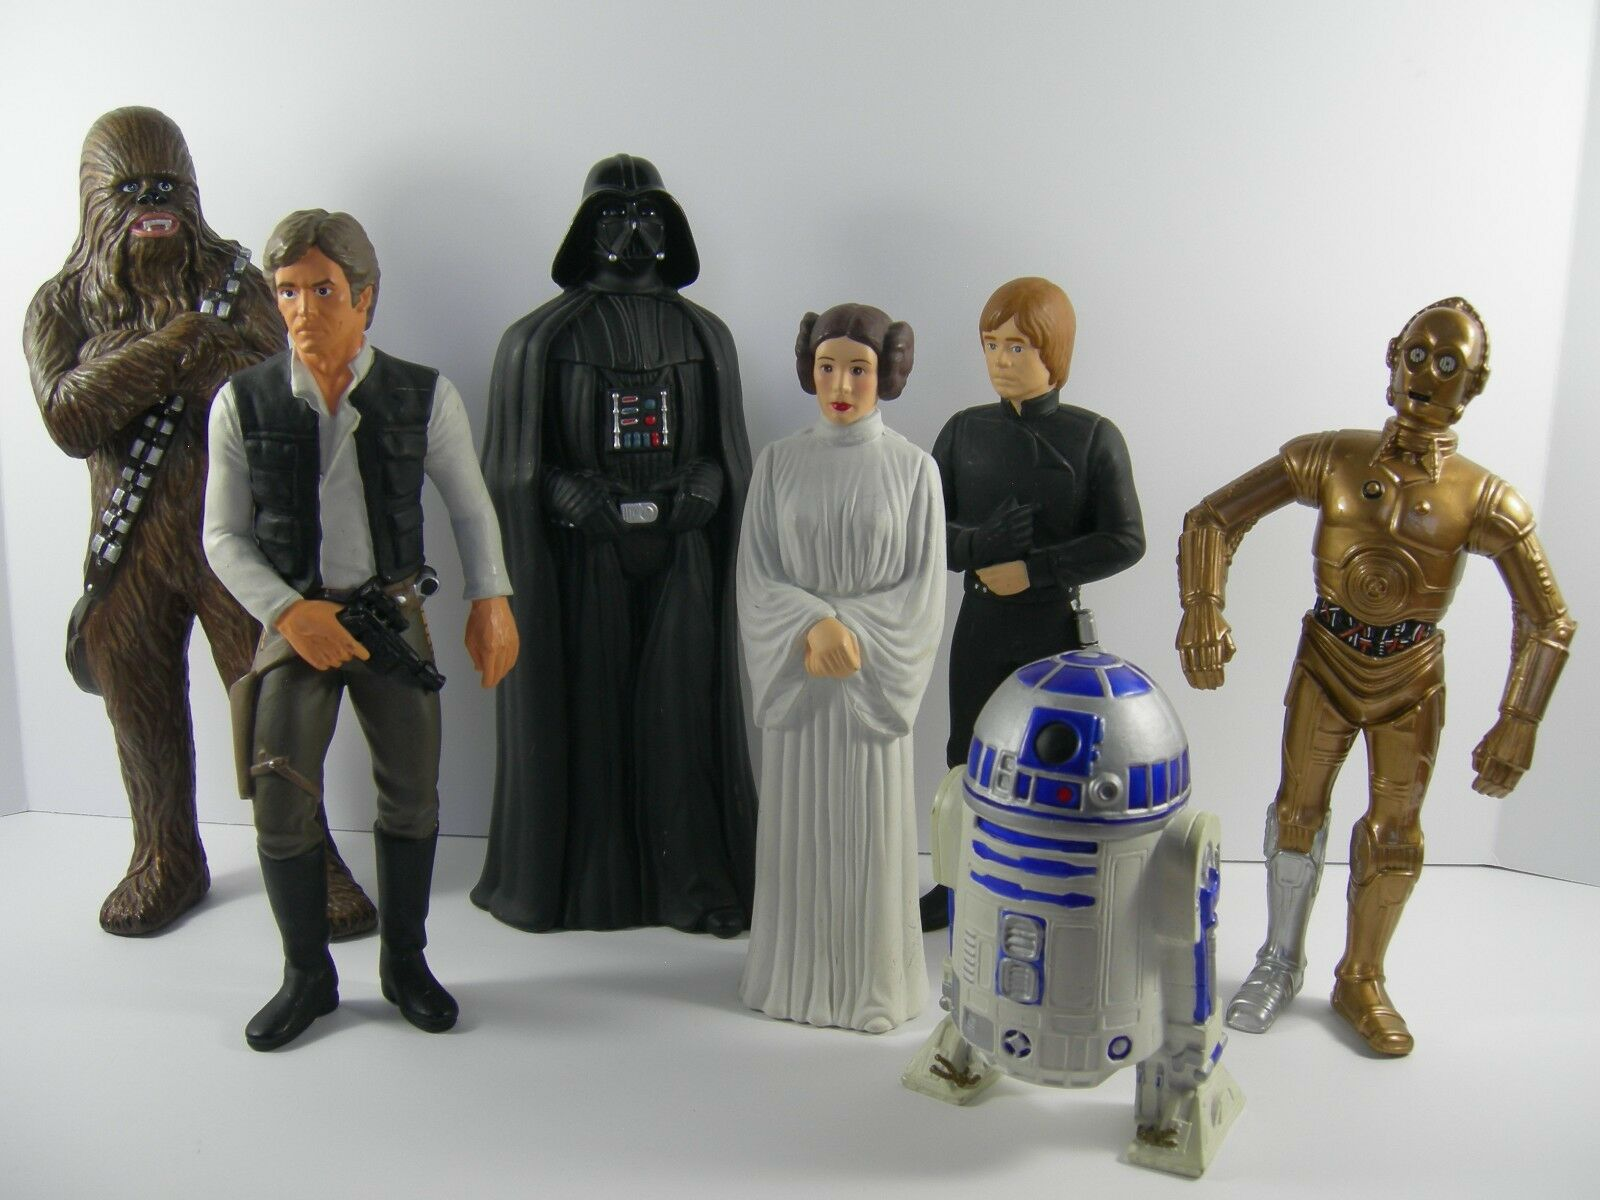 7 Star Wars Figurines Vinyl by Suncoast Picture Rare 9-10 3 4  R2D2 5 1 2  1993